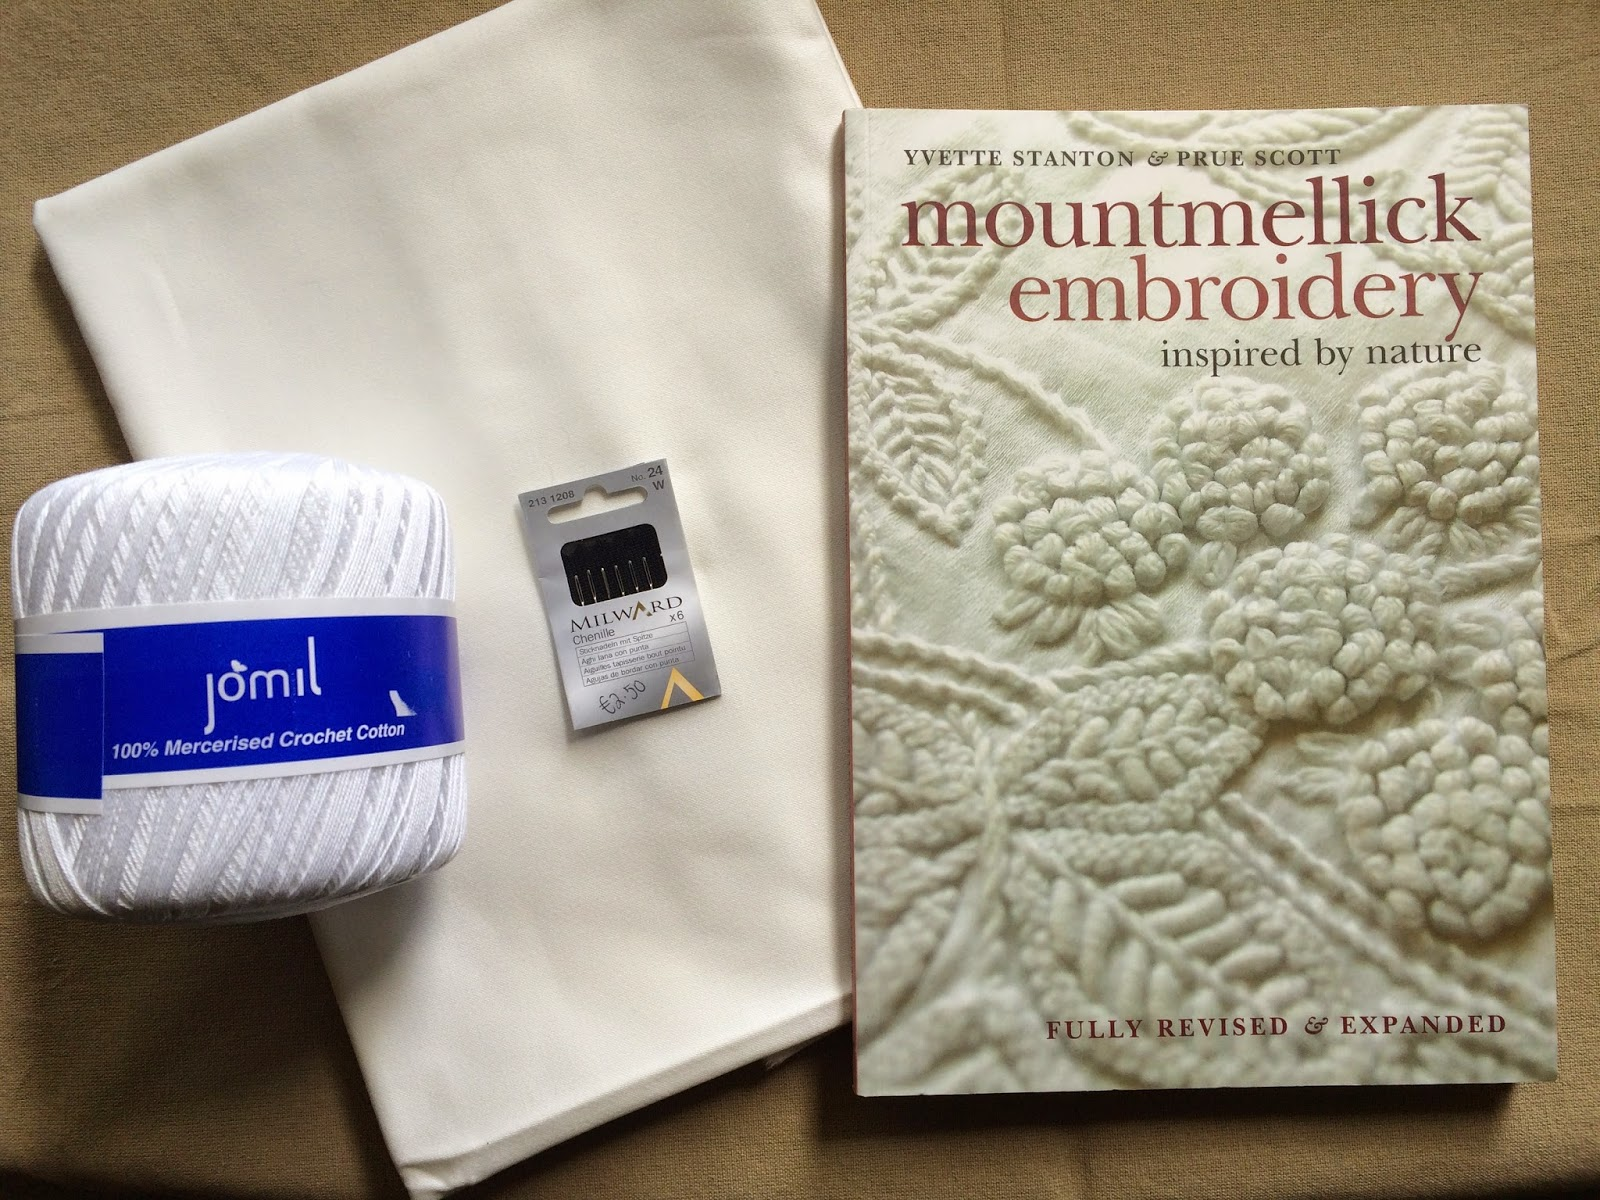 mountmellick embroidery